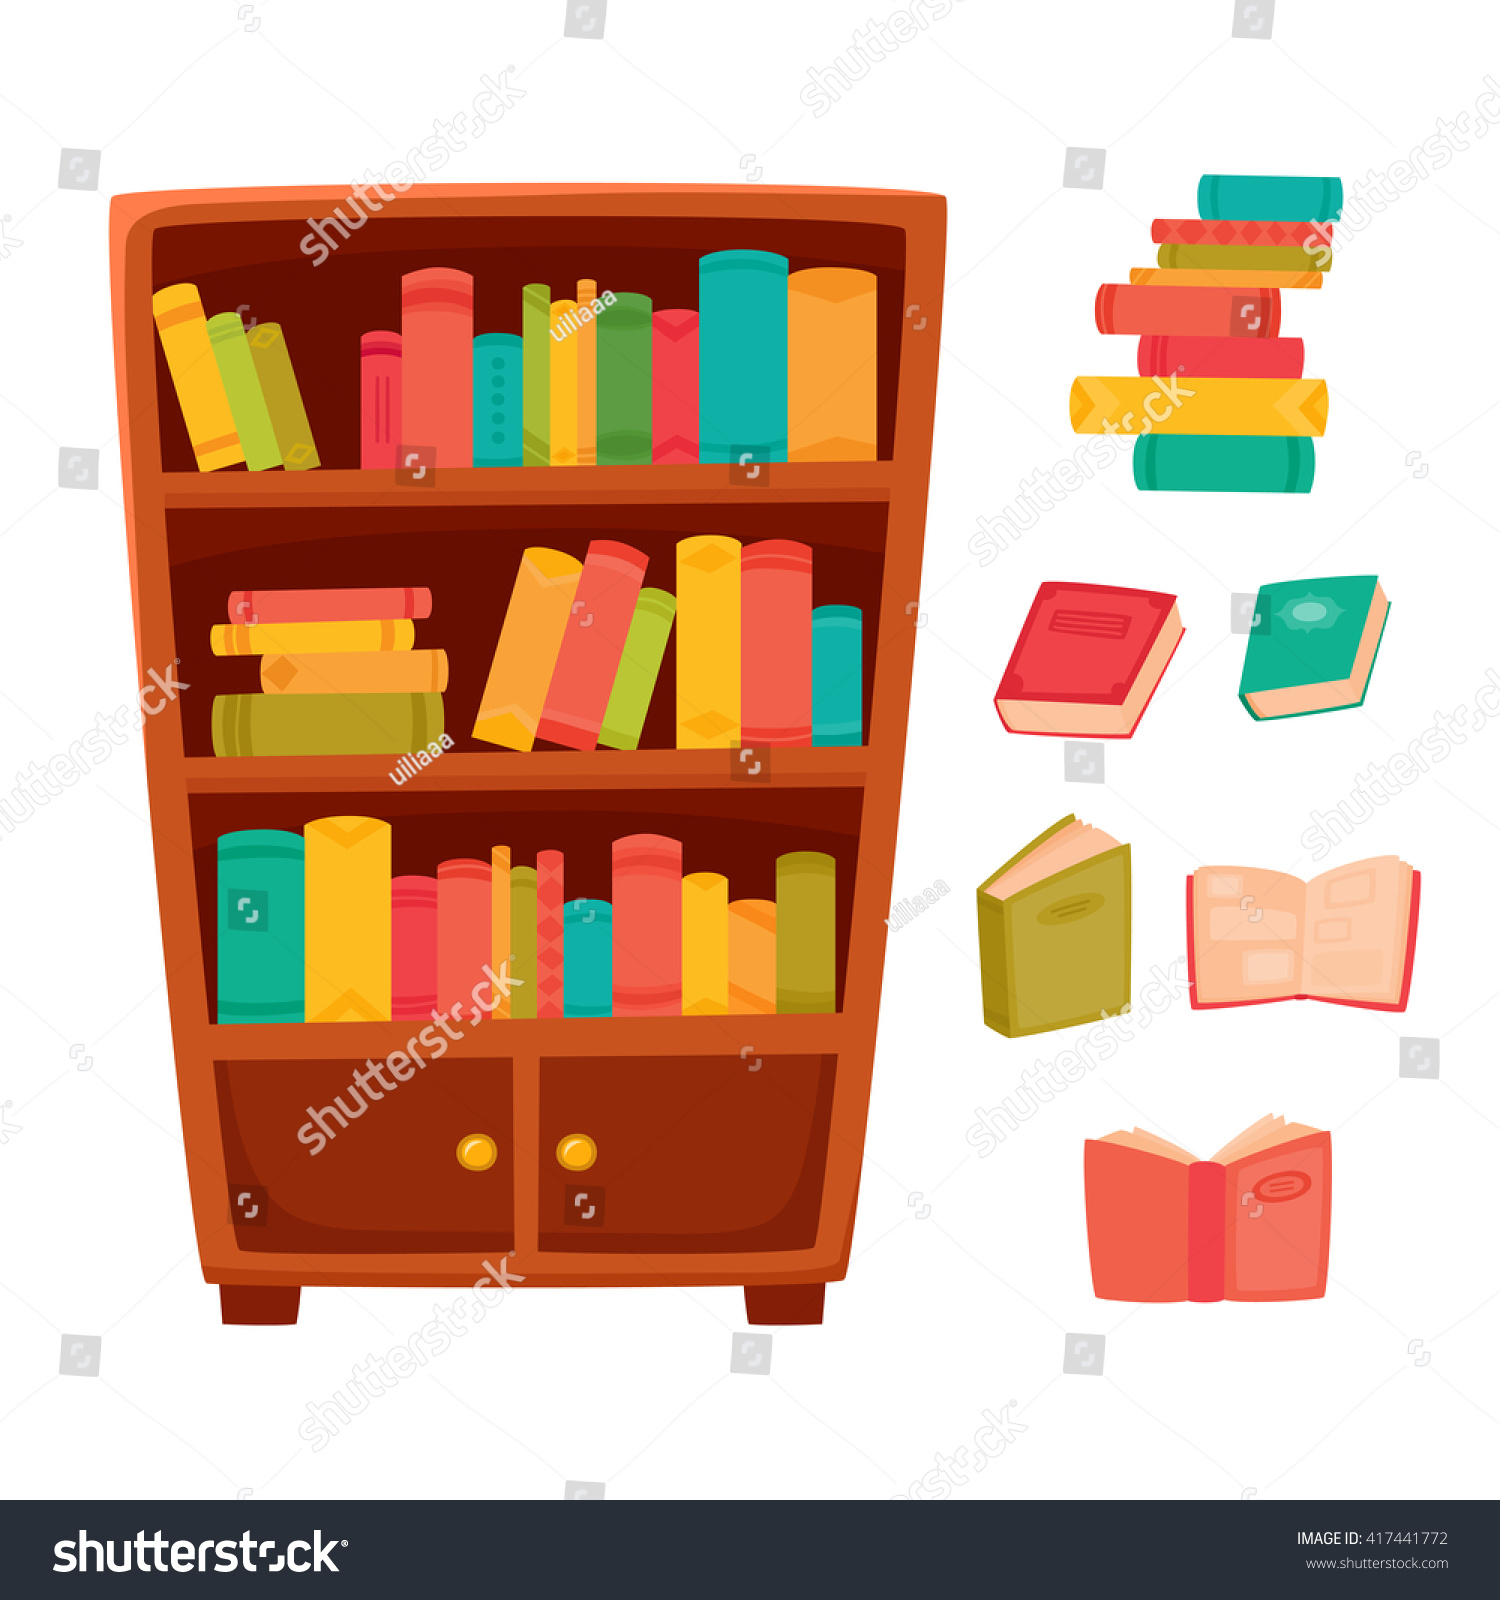 Interior wooden shelves free vector - Vector Illustration Of Different Books On The Shelves Of Wooden Bookcase In Bookstore Or School